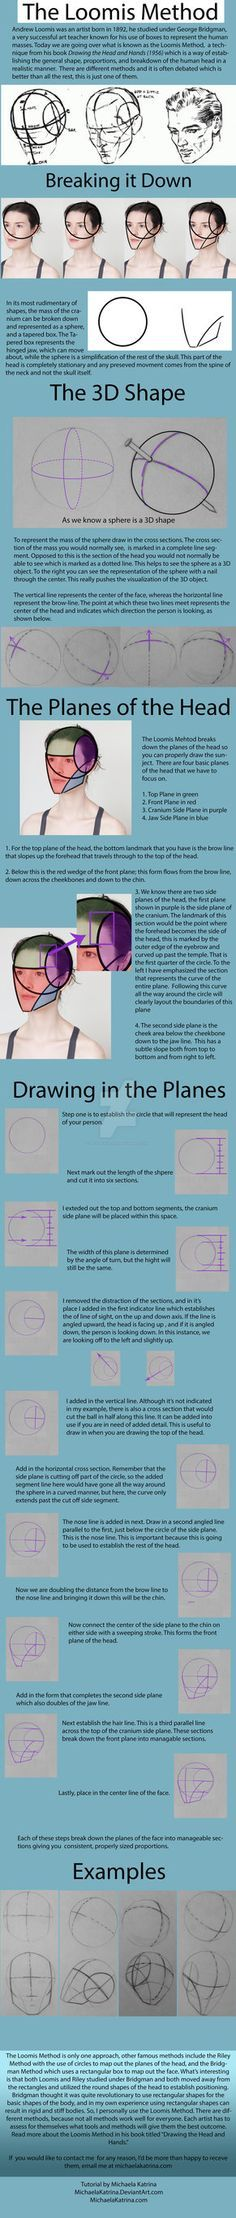 "Here is a quick over view of the Loomis Method, this method can also be found explained in detail in ""Drawing the Head and Hands"" by Andrew Loomis. This book will explain in detail the steps as wel..."